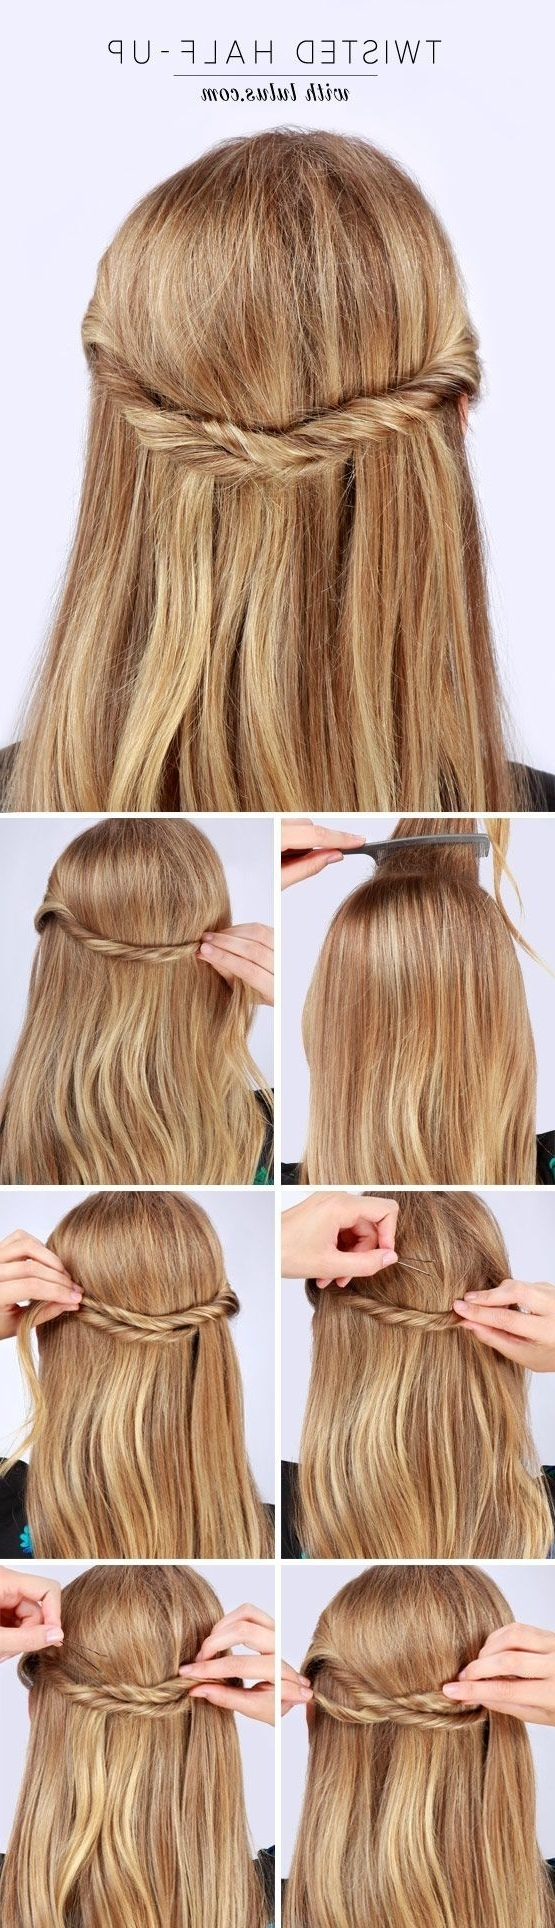 60 Cute Easy Half Up Half Down Hairstyles – For Wedding, Prom, And Inside Straight Half Updo Hairstyles (View 3 of 15)